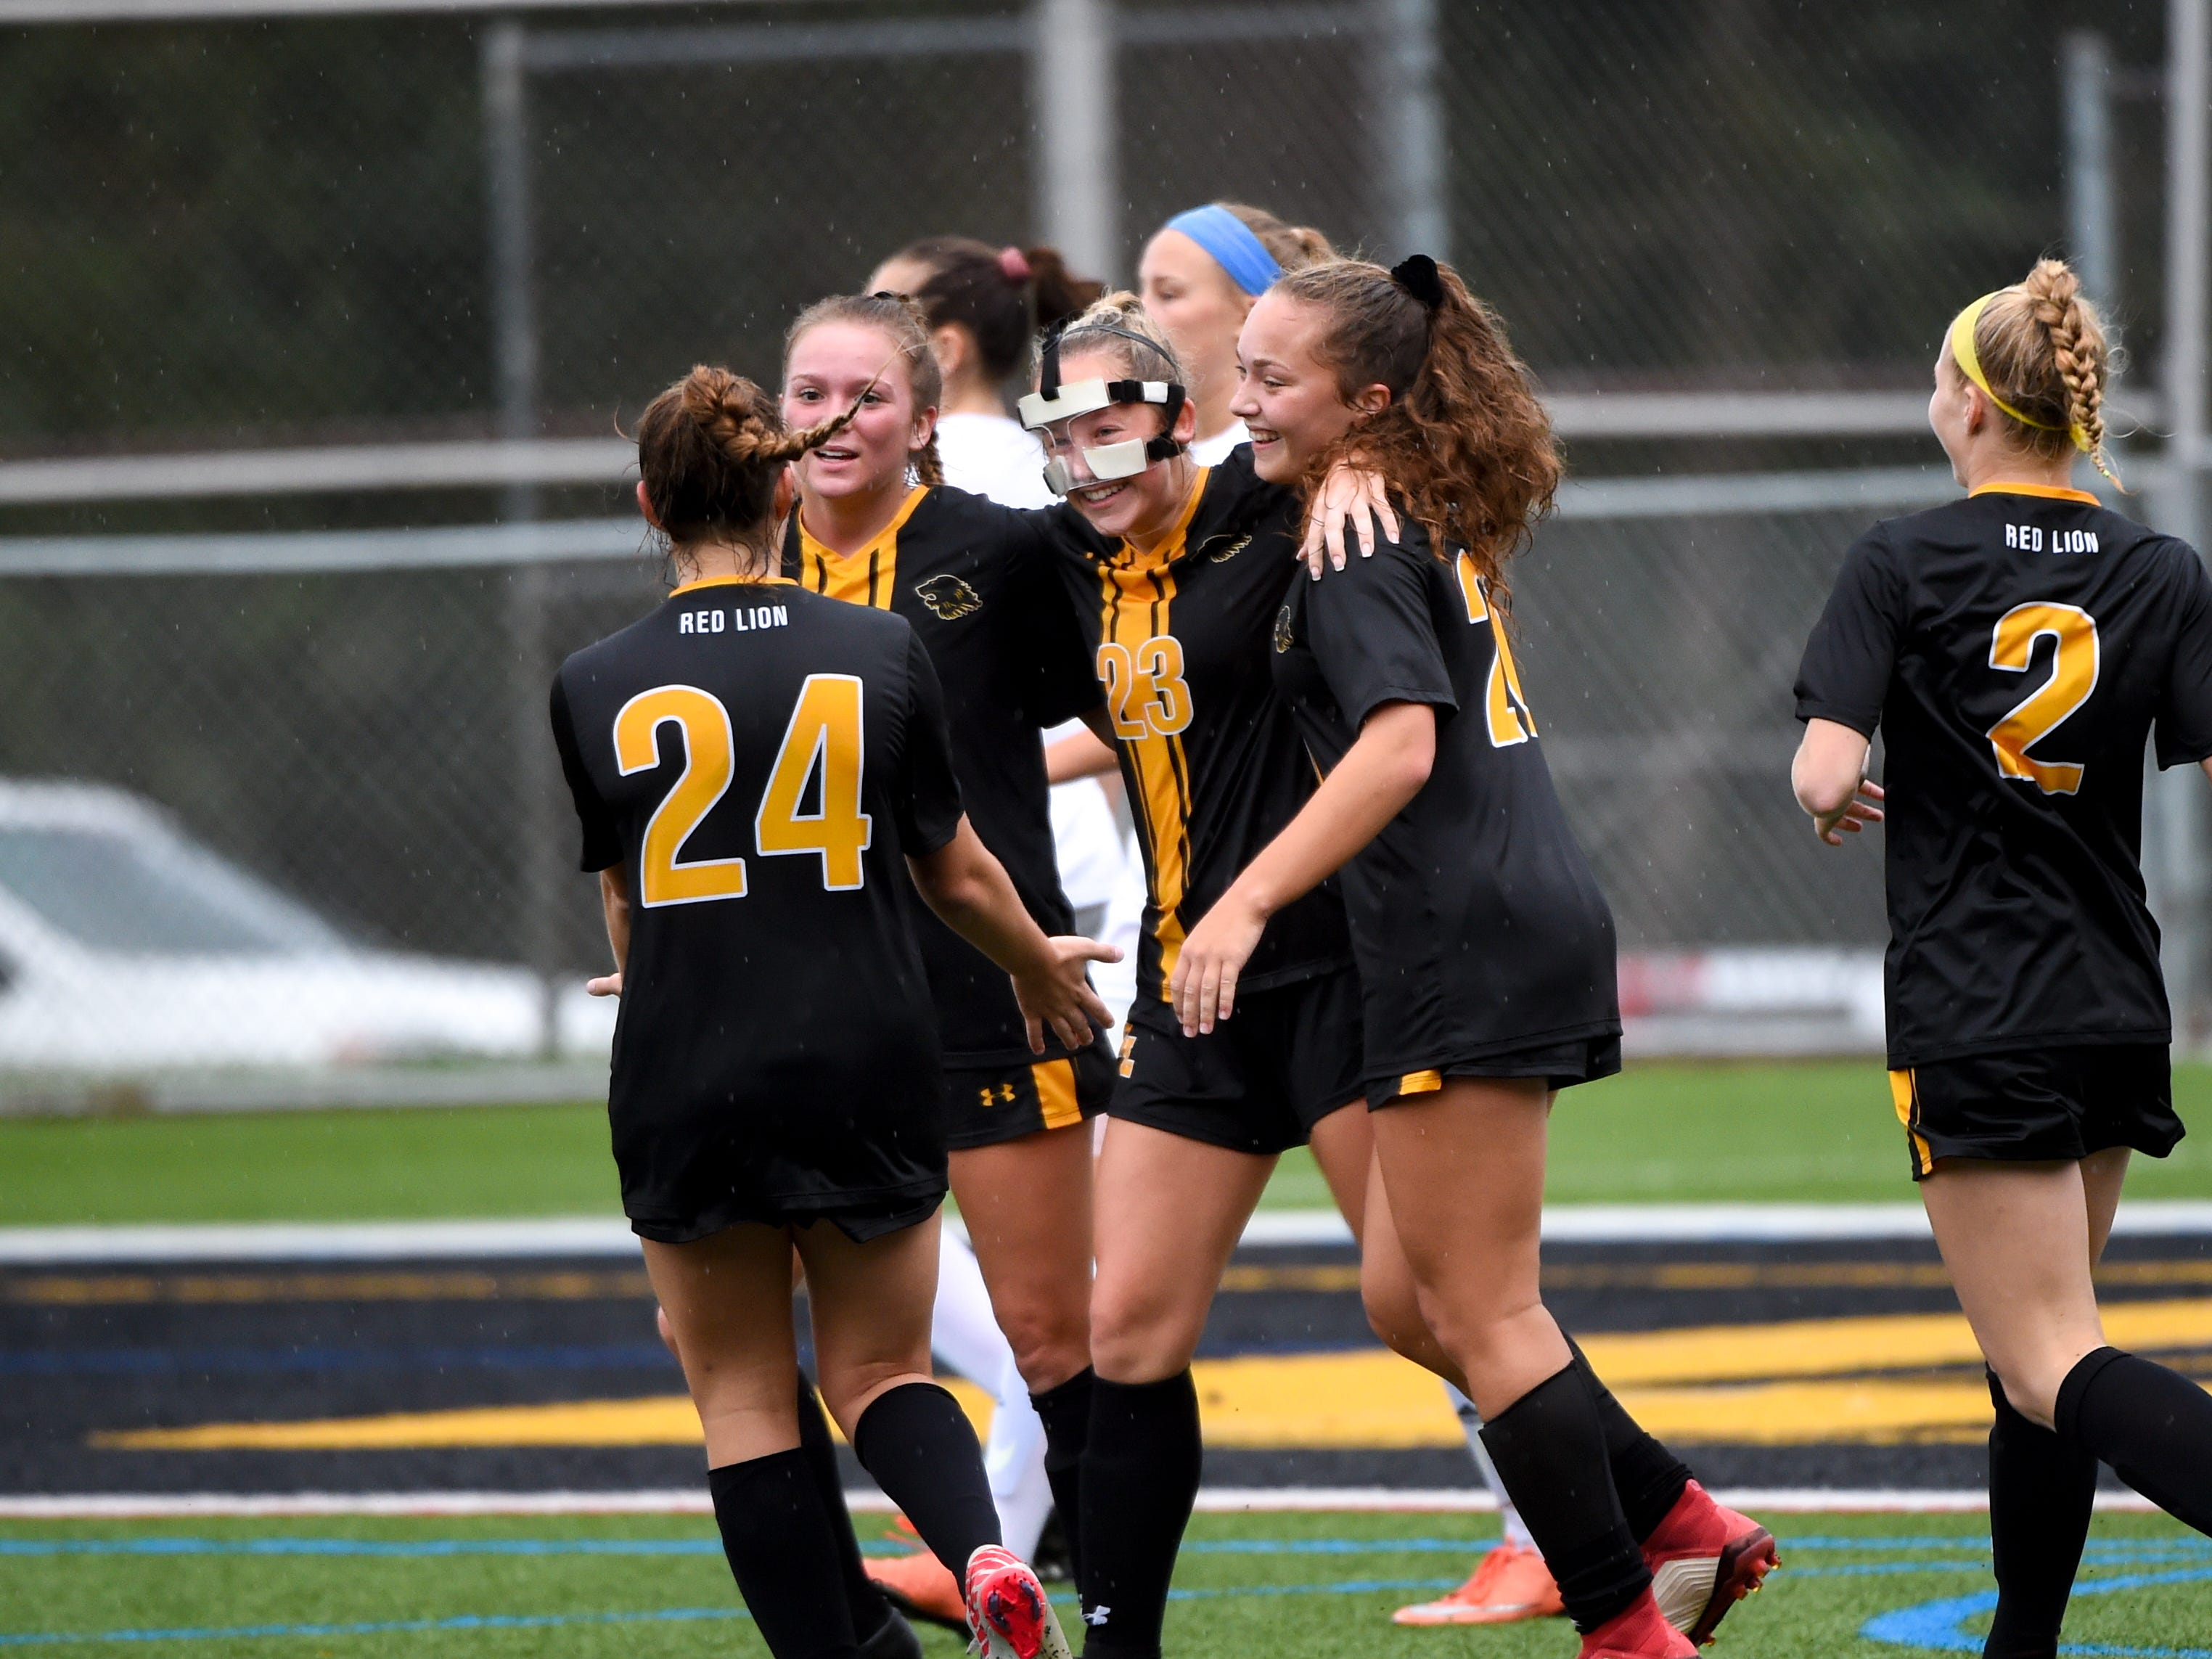 Red Lion celebrates after scoring a goal against Dallastown, October 11, 2018. The Lady Lions beat the Wildcats 4-0.